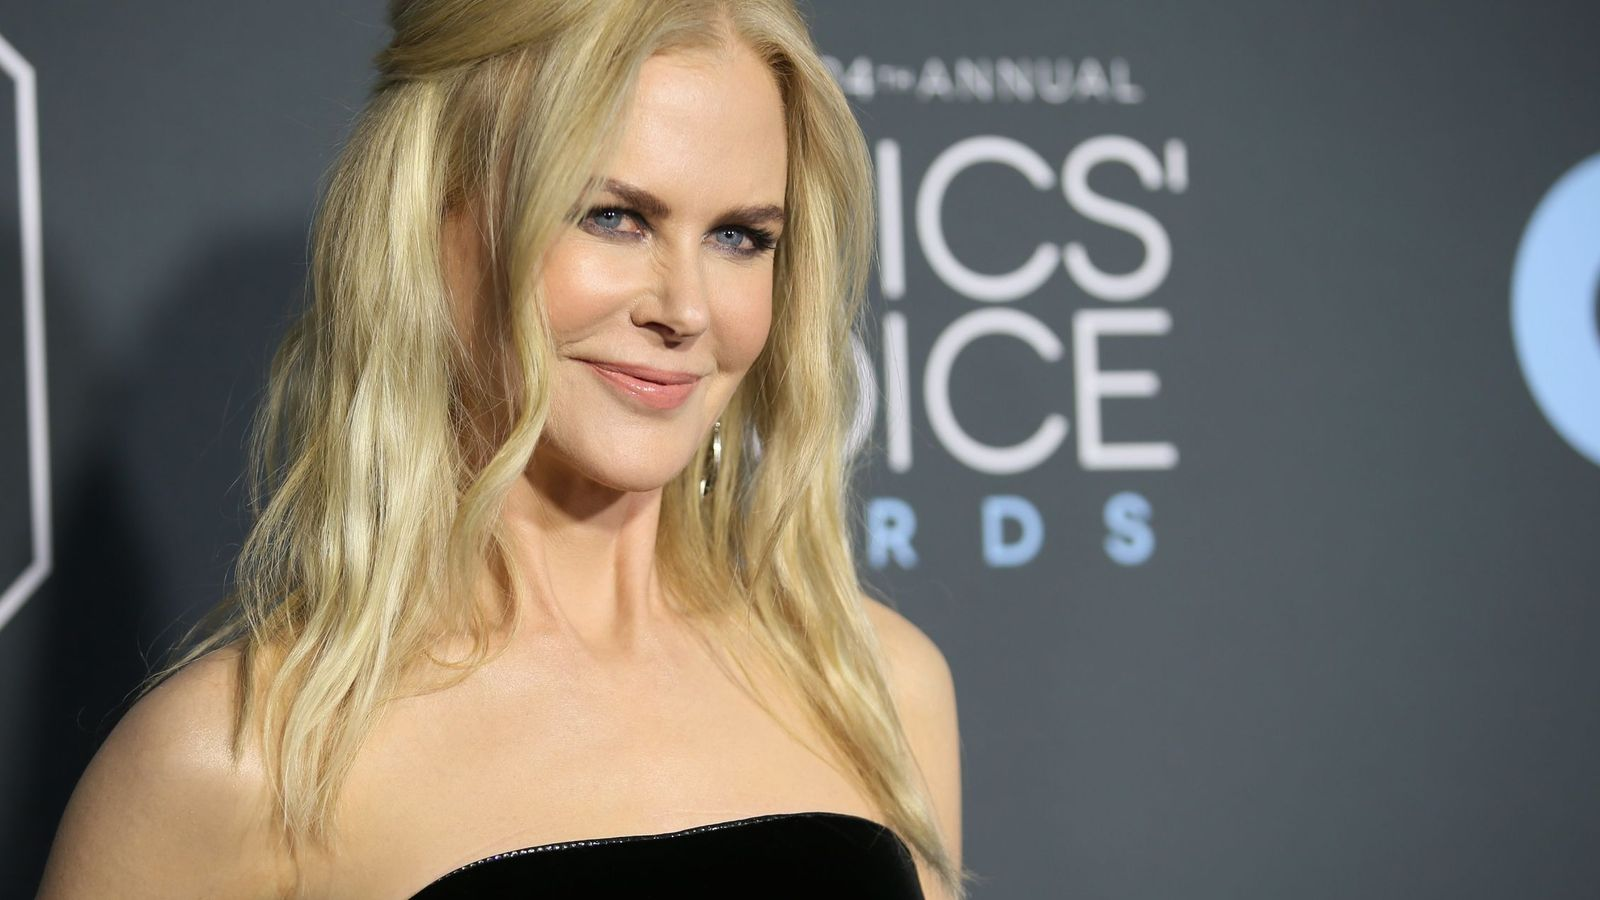 Foto: El premio al peor beauty look es para Nicole Kidman en los Critics' Choice Awards